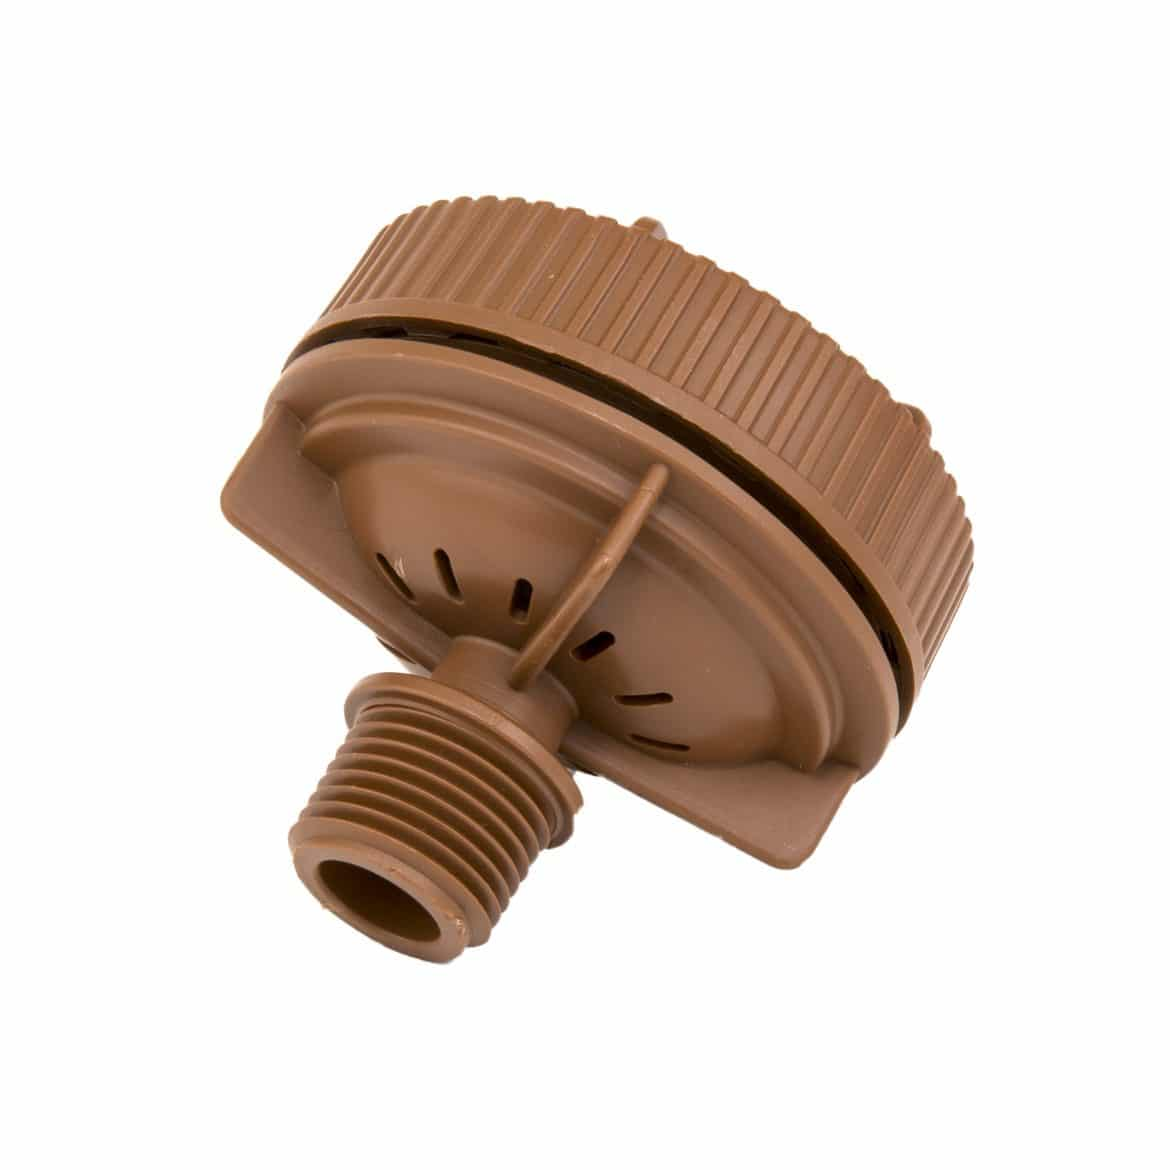 Flush Valve For Agriculture and Horticulture